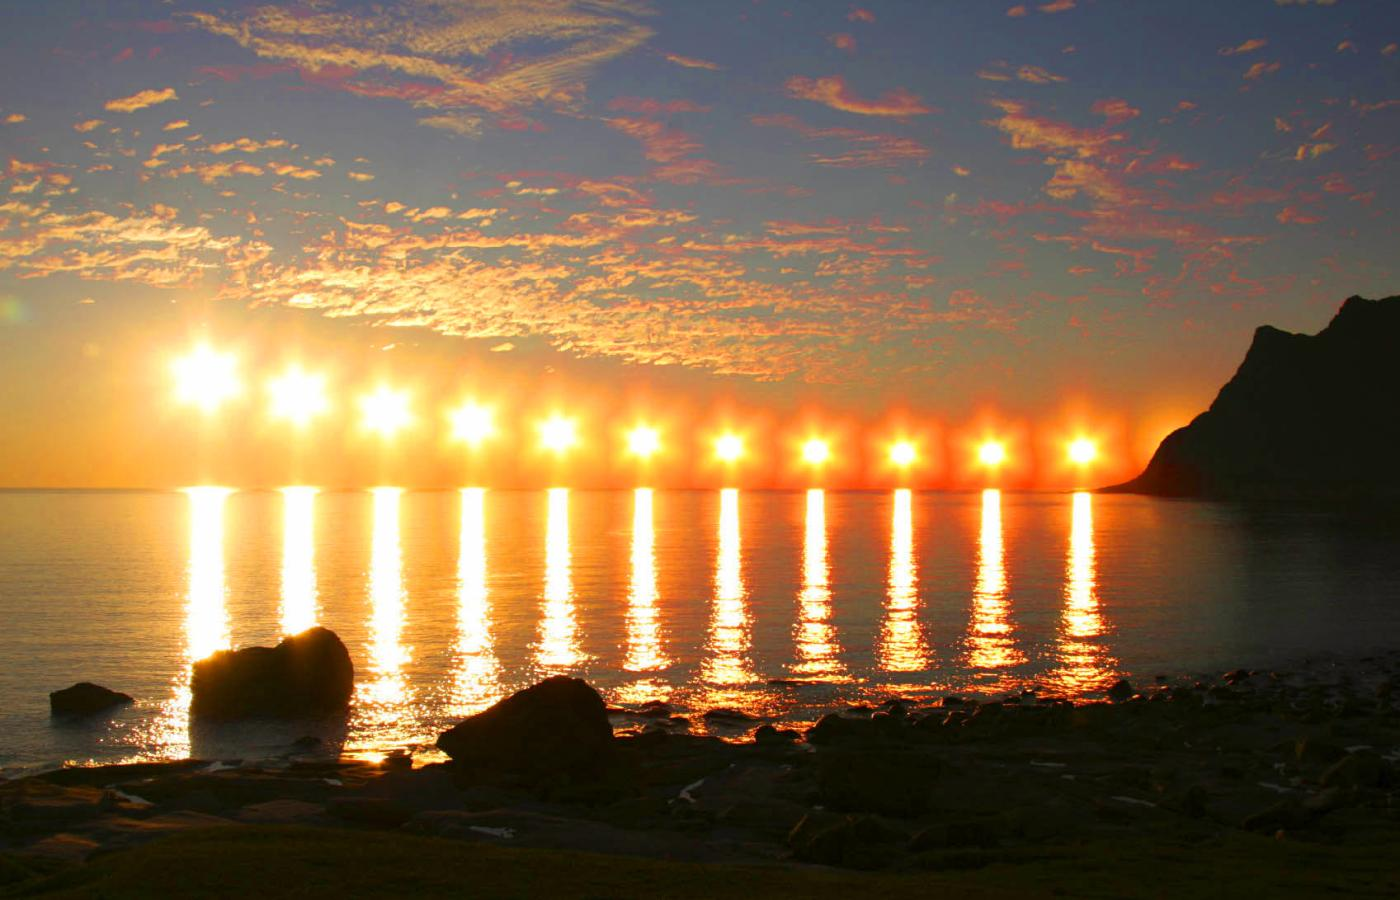 Time lapse photo showing the midnight sun in the NWT